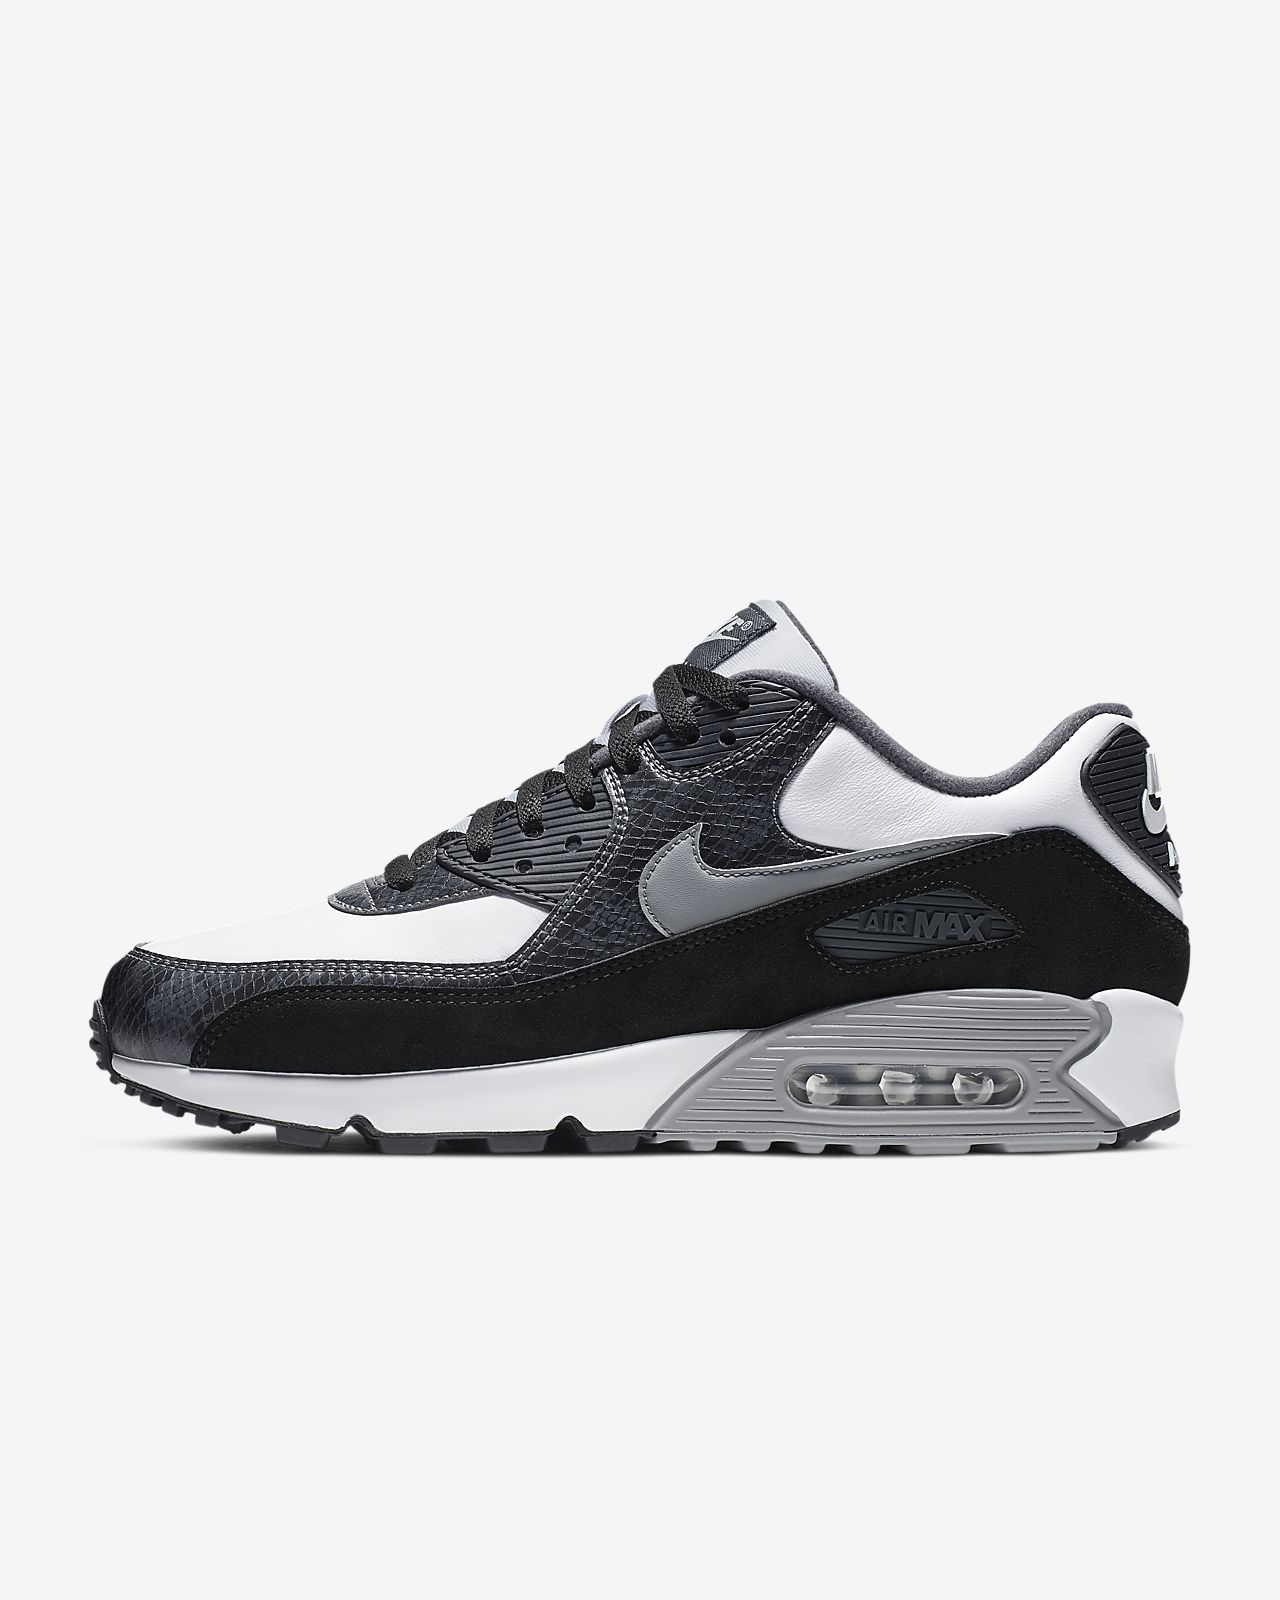 Exclusivo Nike Air Max 90 Zapatos | Nike Air Max 90 Premium